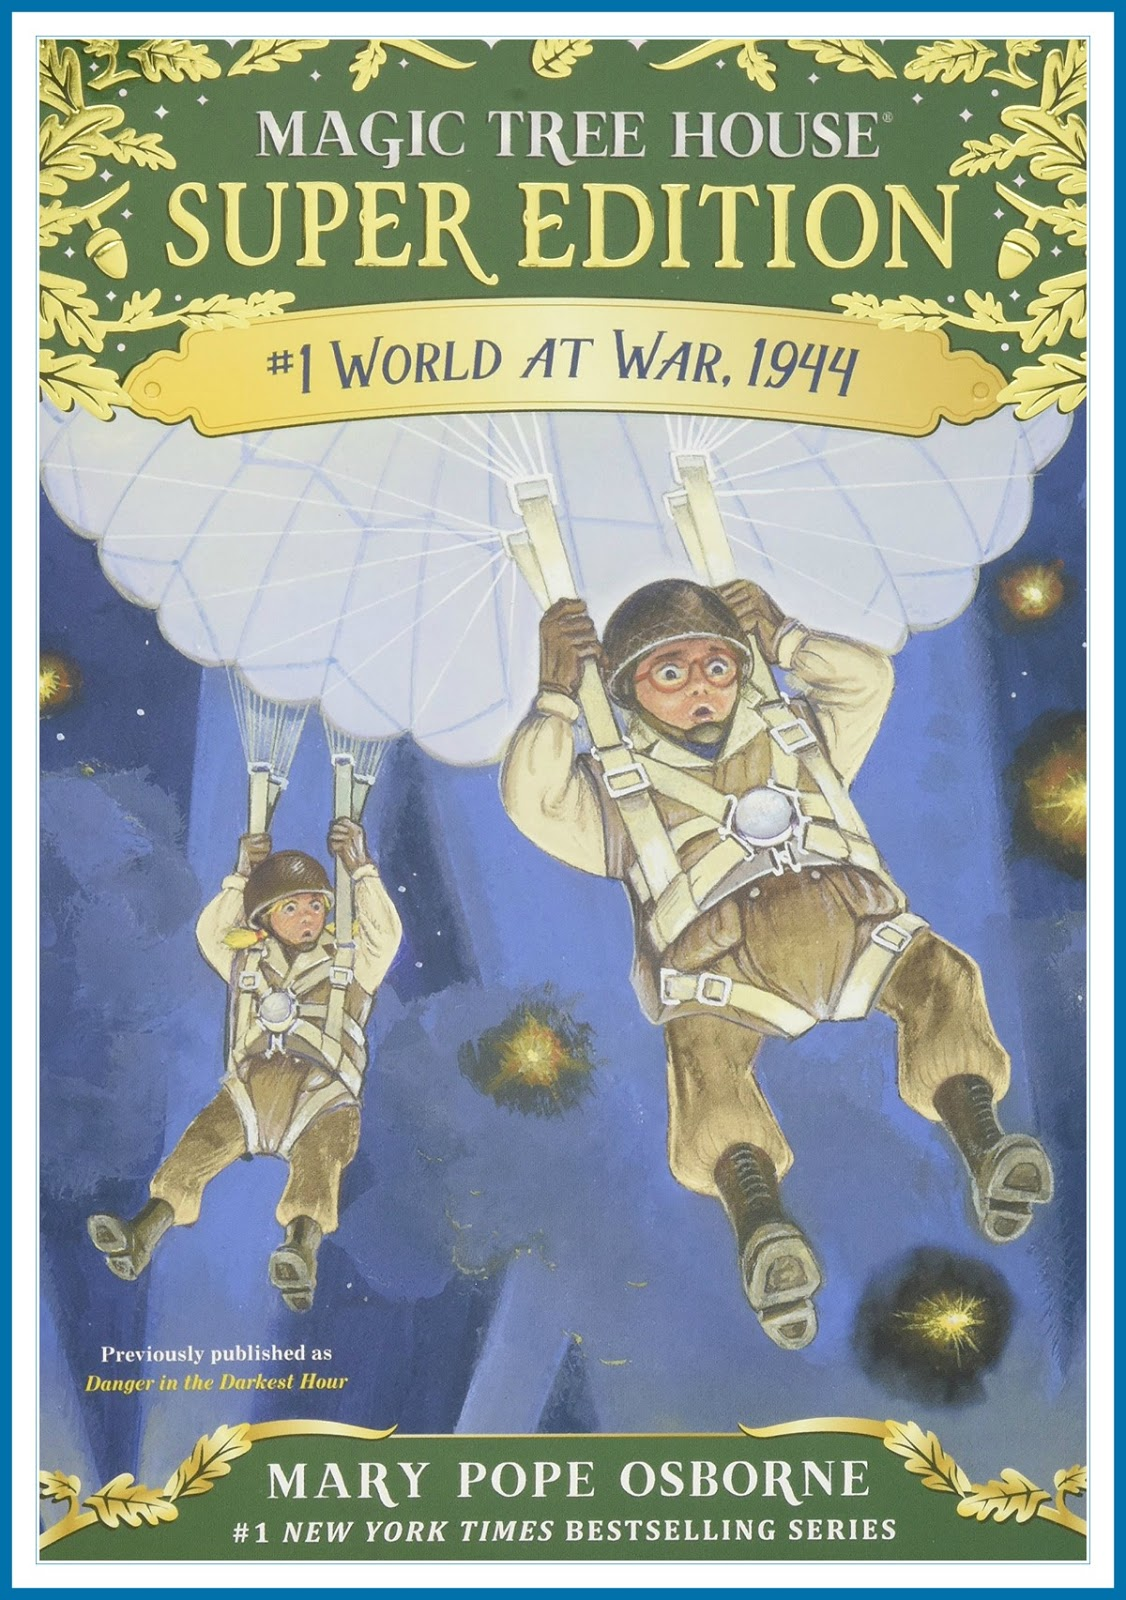 World at War, 1944 - Review of a Magic Tree House Super Edition on